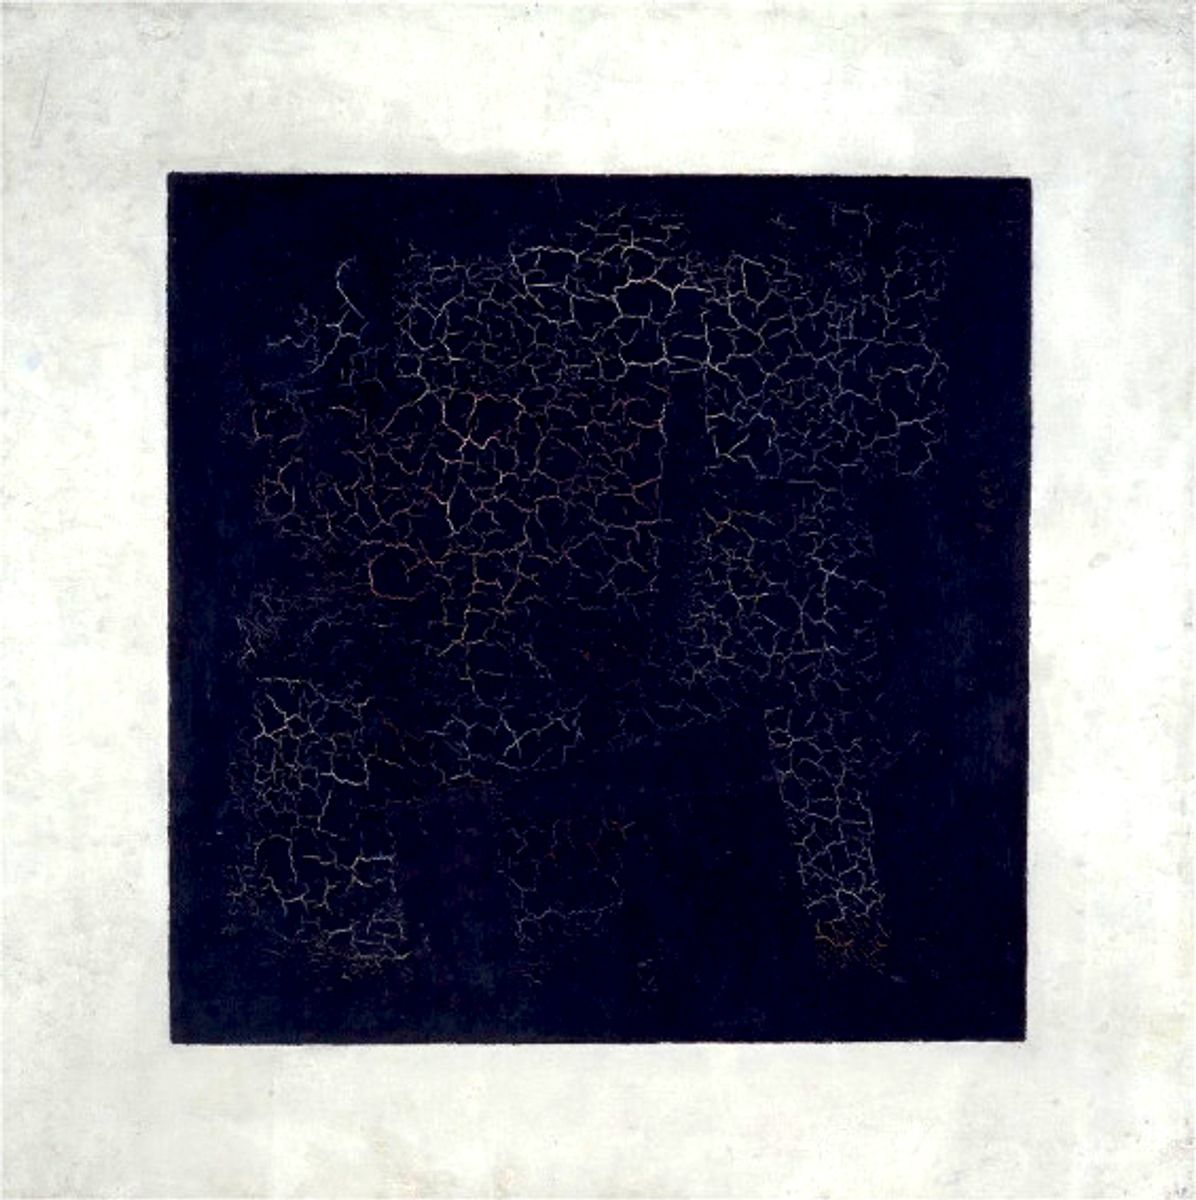 Stories of Iconic Artworks: Kazimir Malevich's Black Square